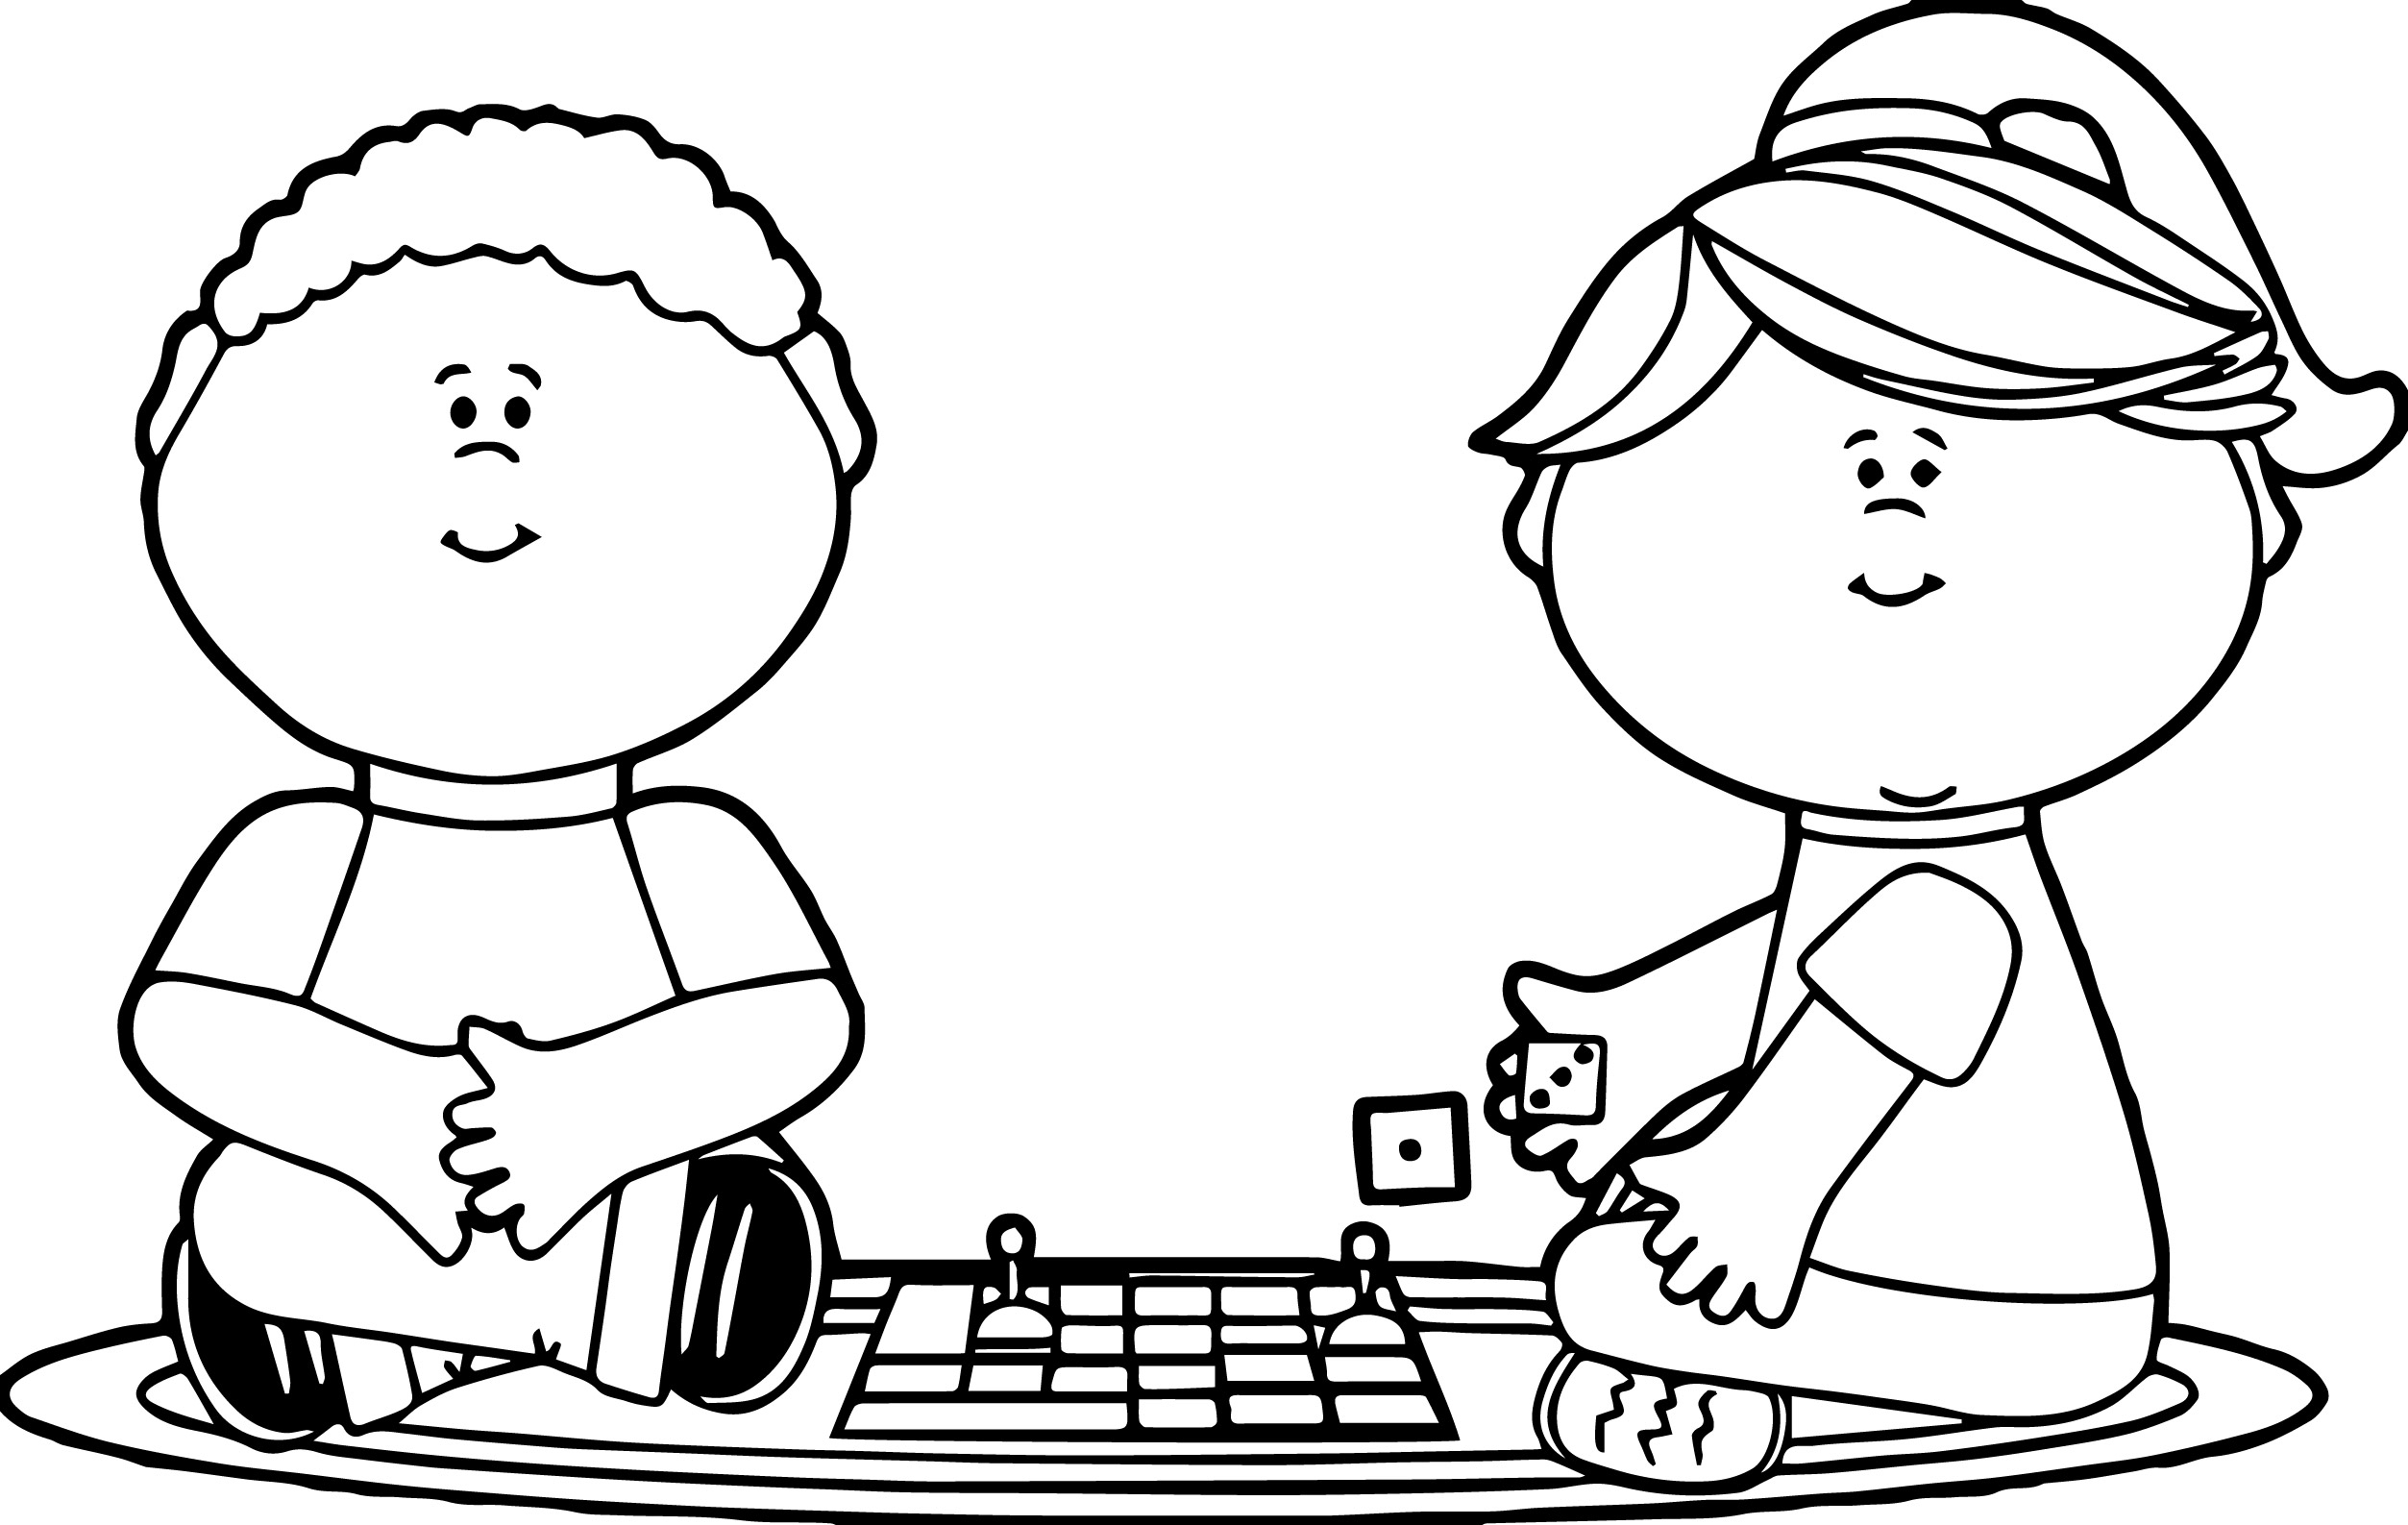 Board Game Clipart Black And White.